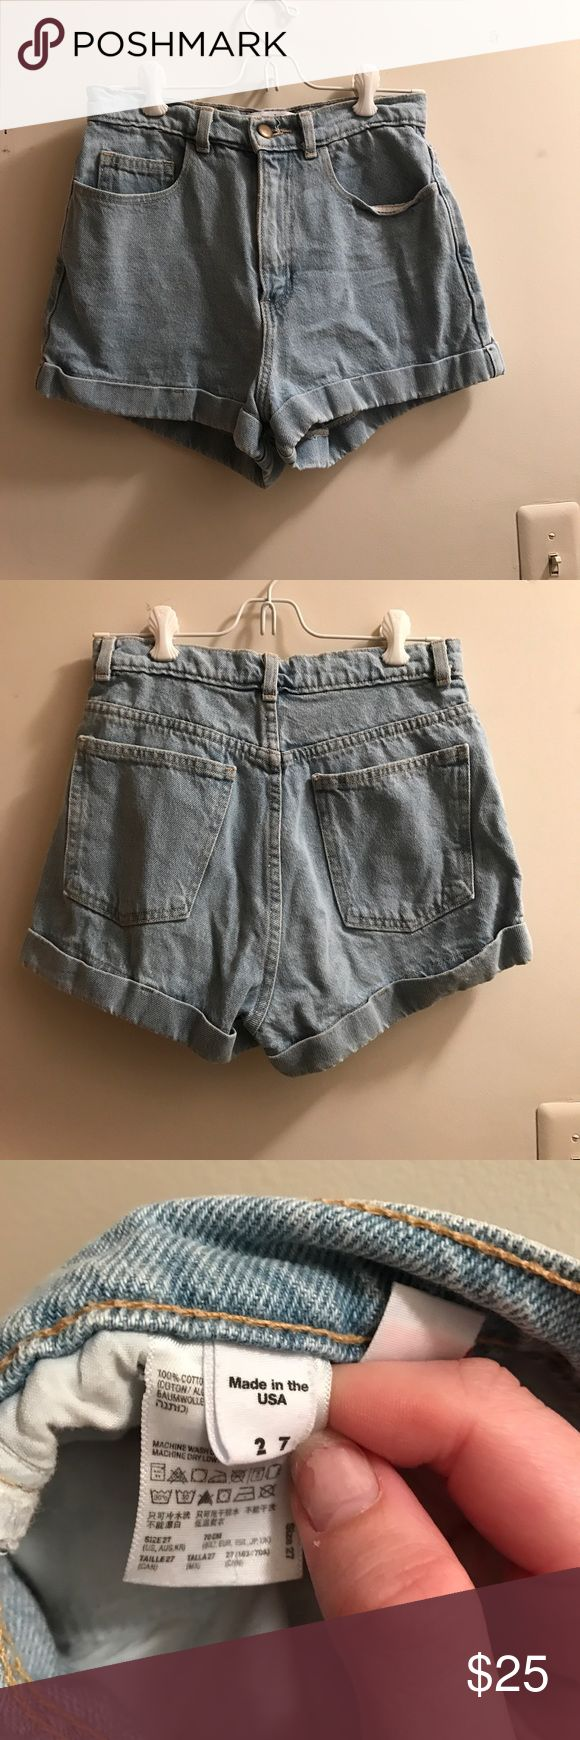 American Apparel Jean Shorts AA jean shorts, very flattering, high waisted mom style!! American Apparel Shorts Jean Shorts